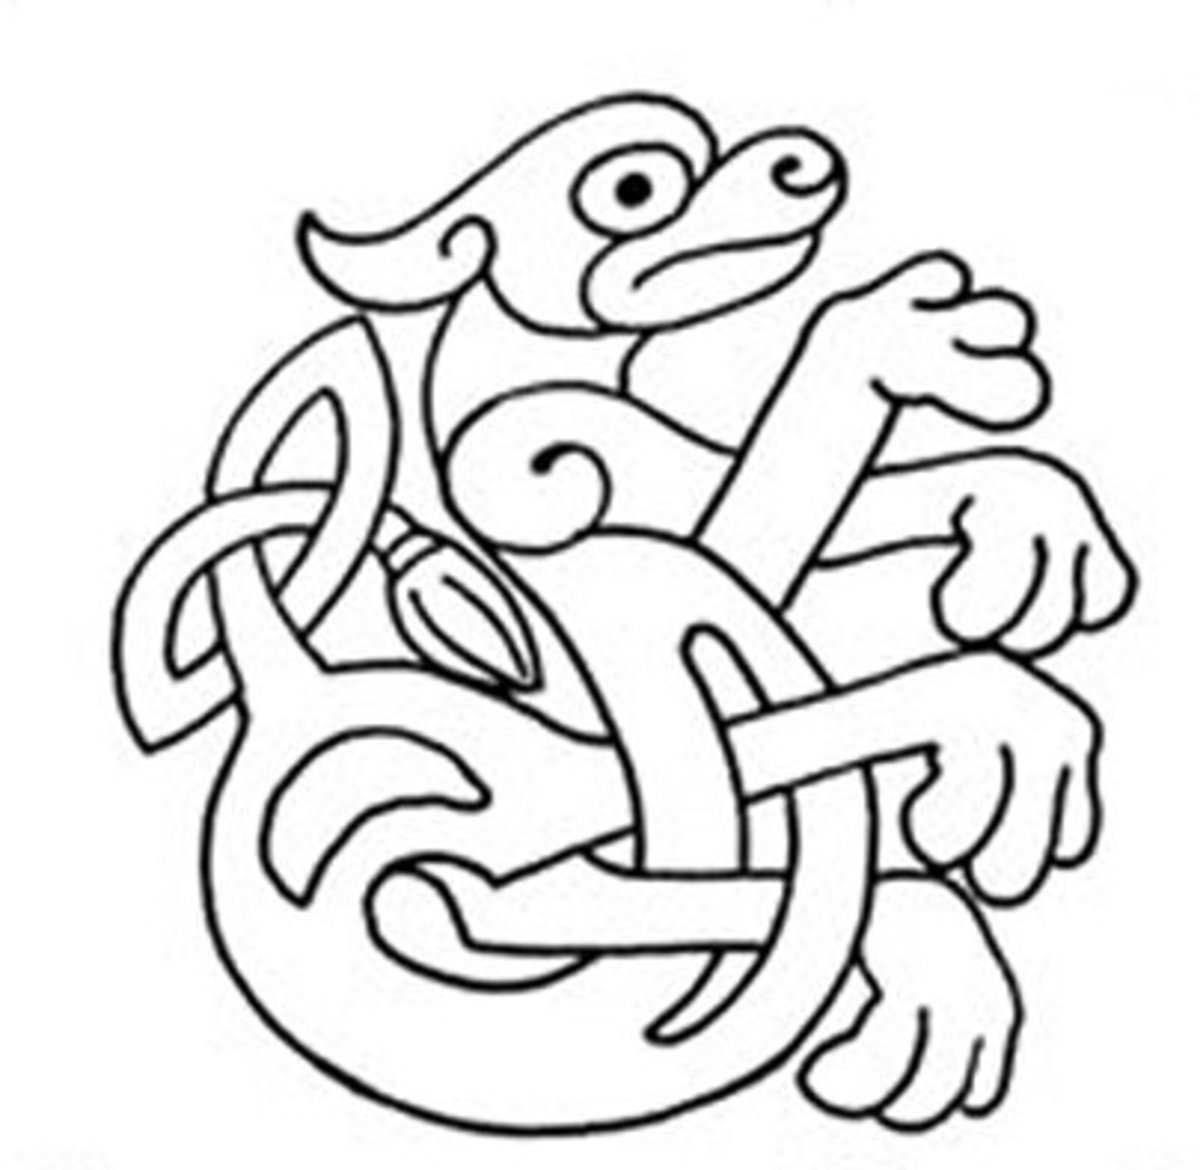 Celtic Design Art Coloring Pages for Kids Colouring Pictures to Print - Swift Hound